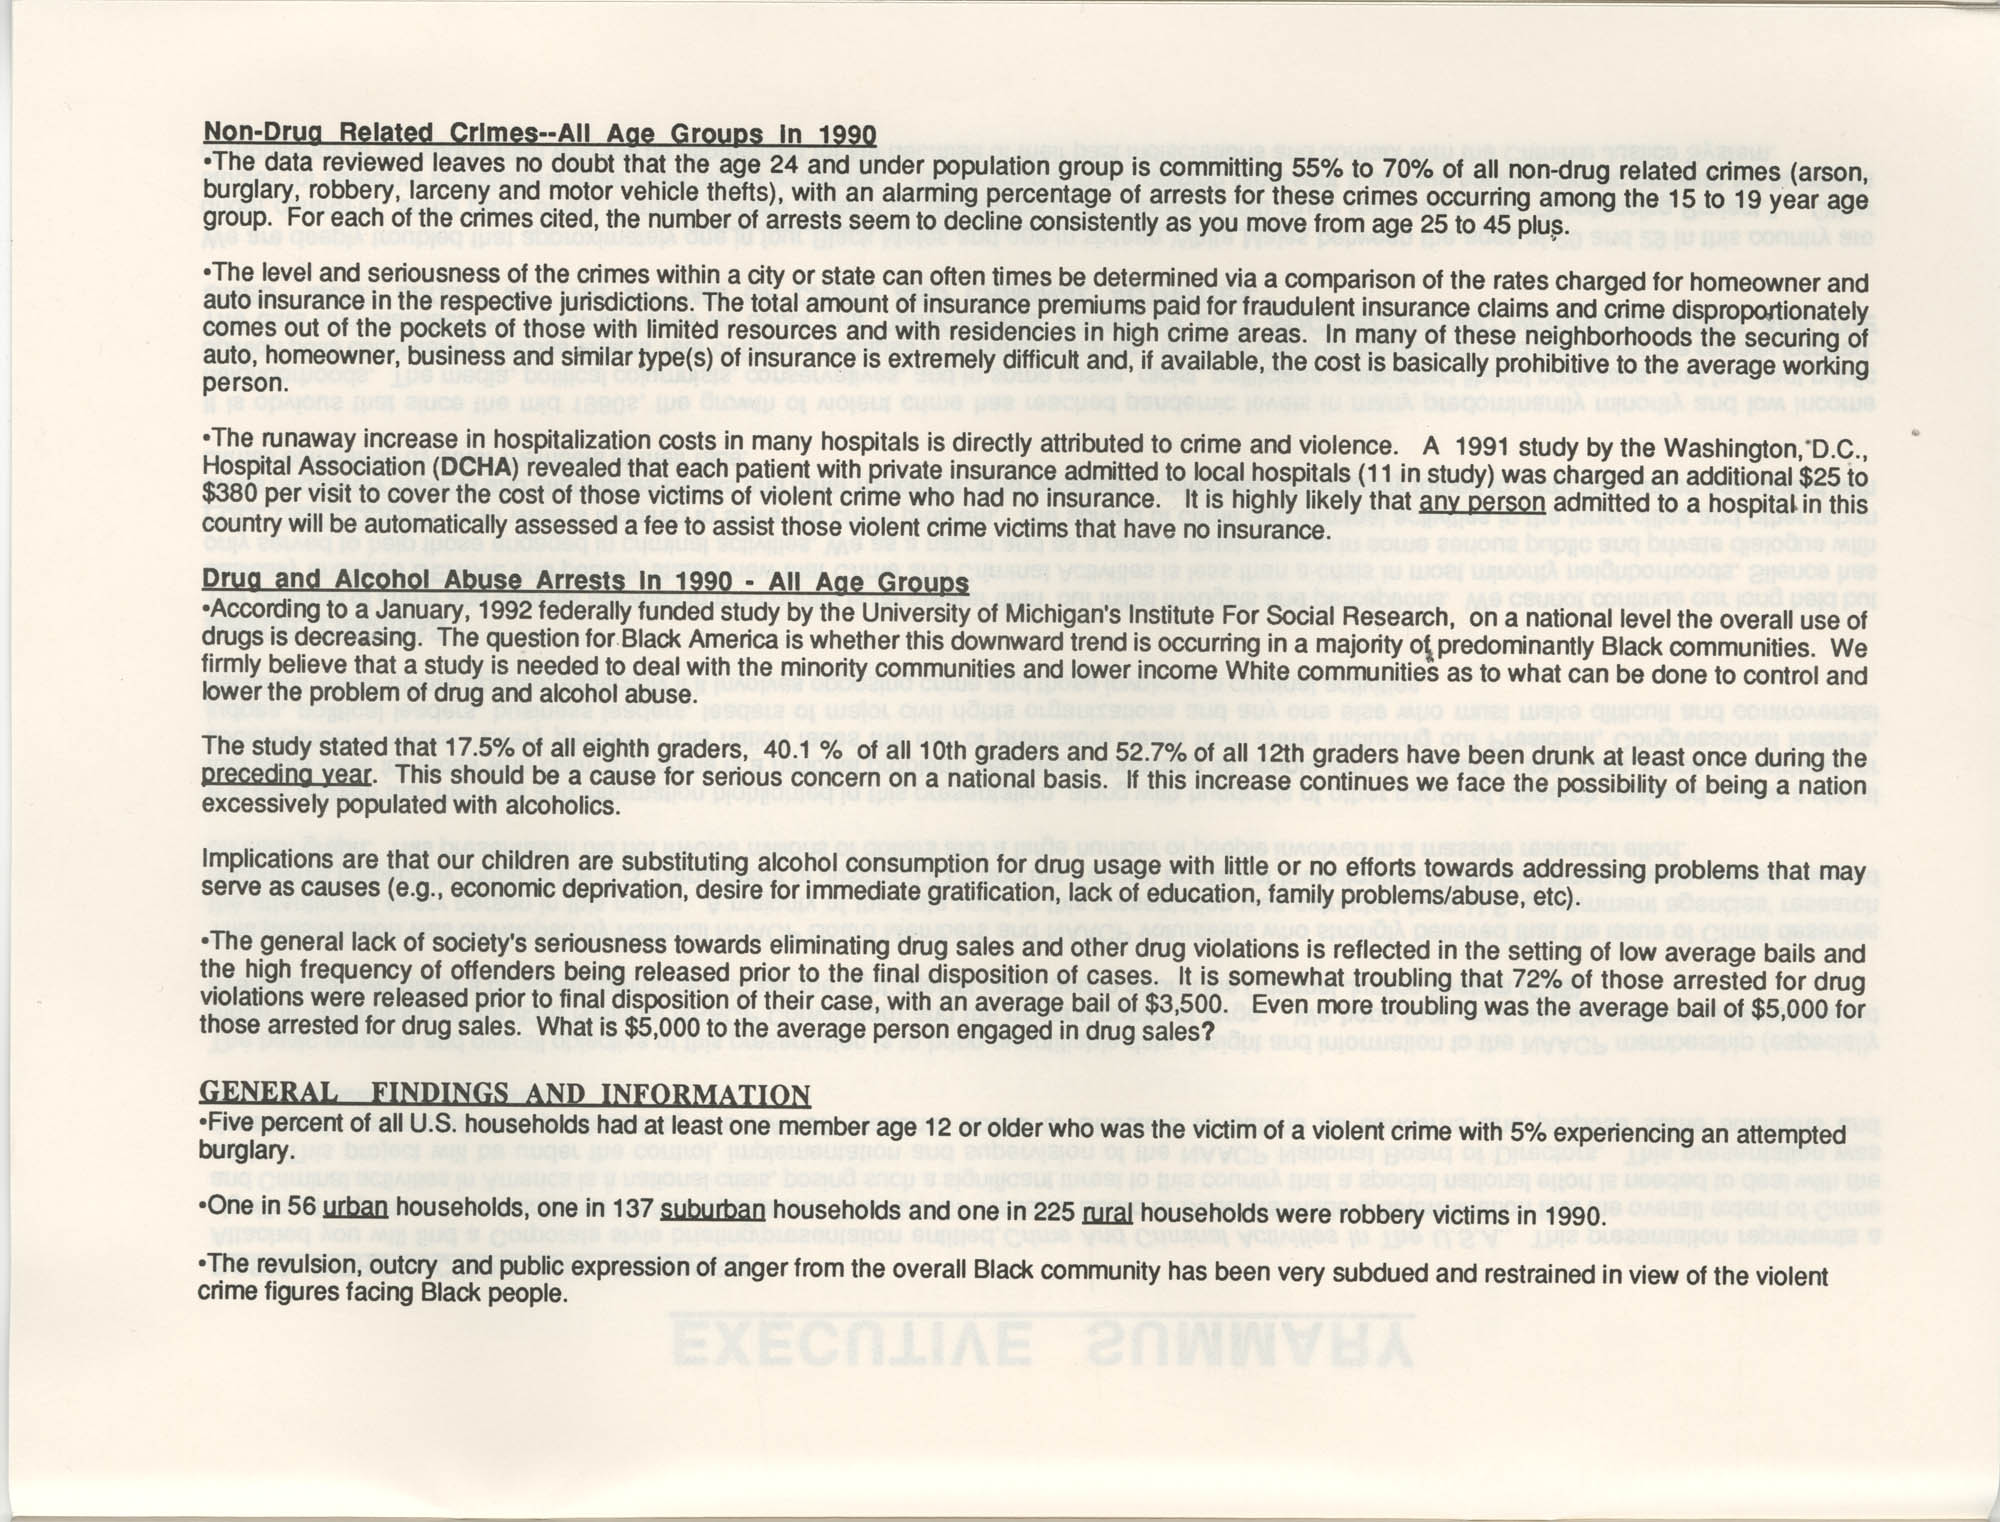 Crime and Criminal Activities in the U.S.A., NAACP National Board of Directors, Executive Summary, Page 2